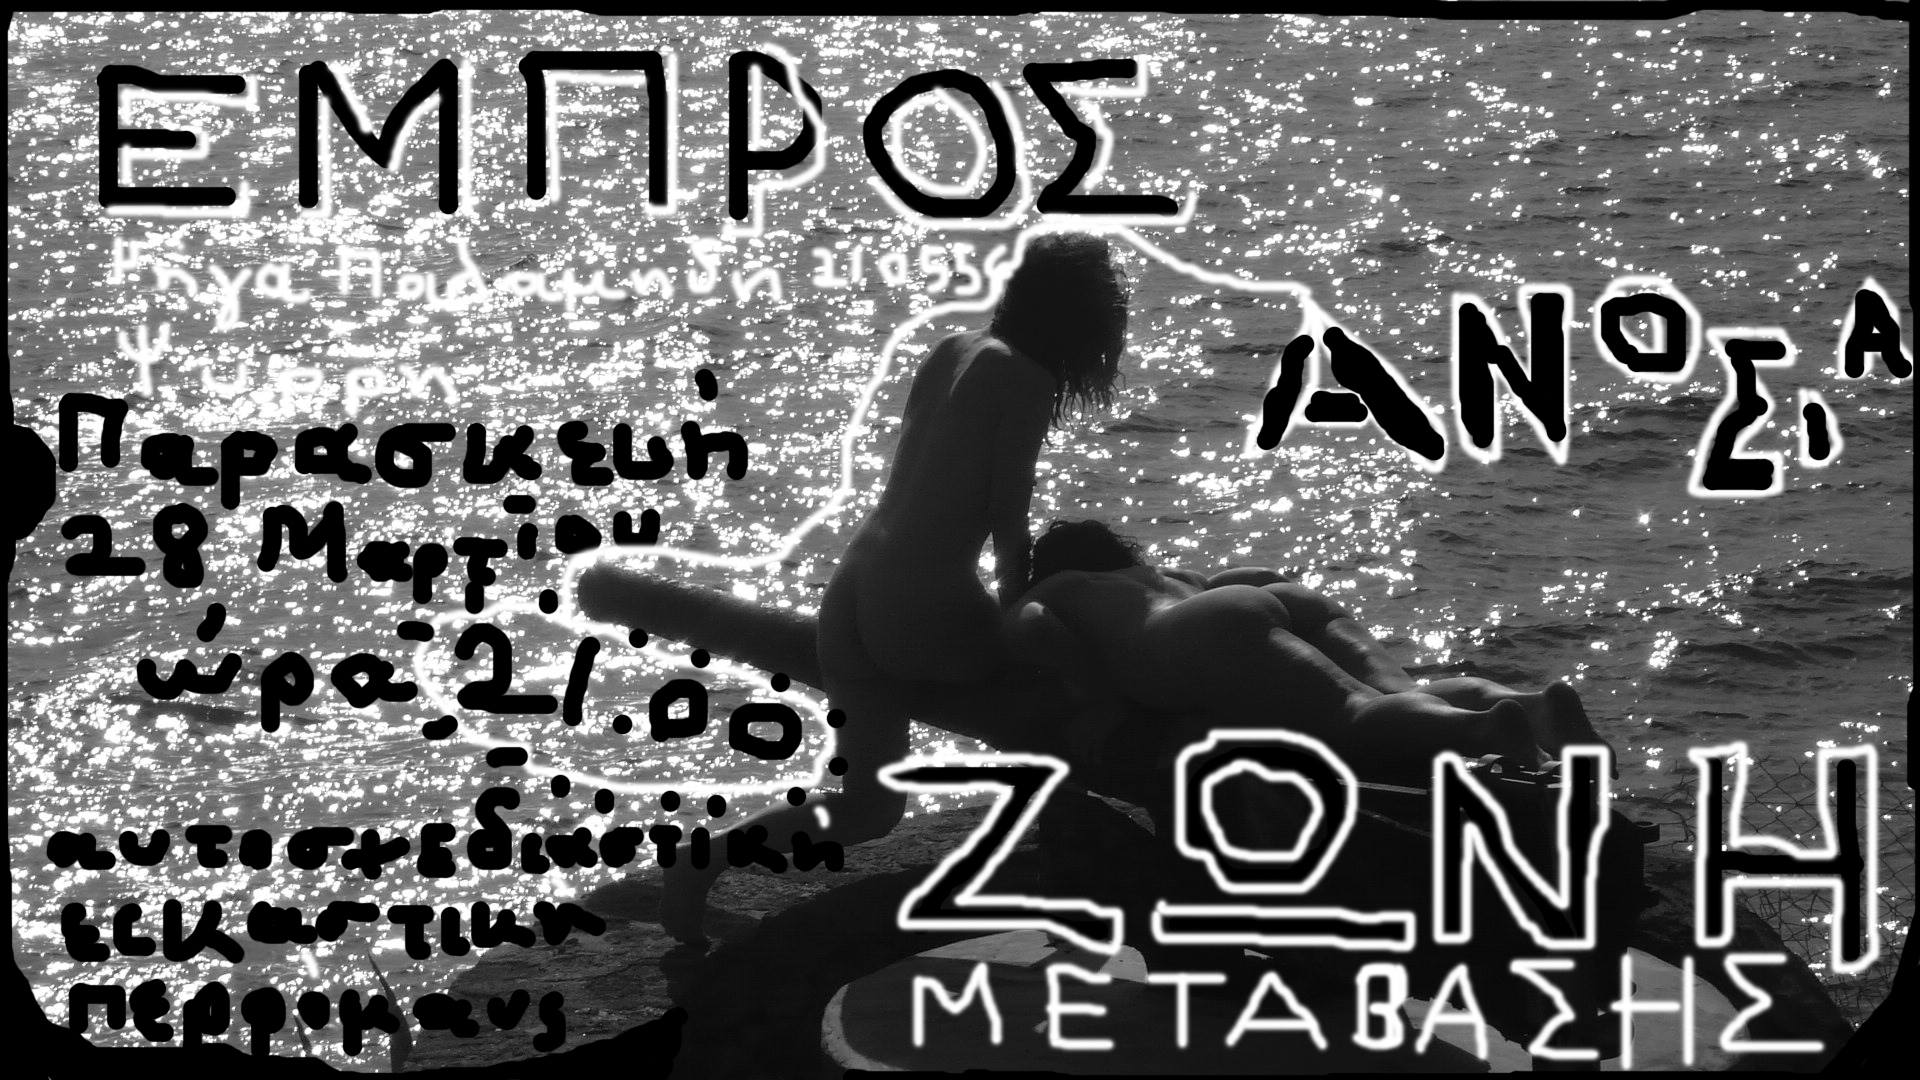 Anosia - Transition Zone poster